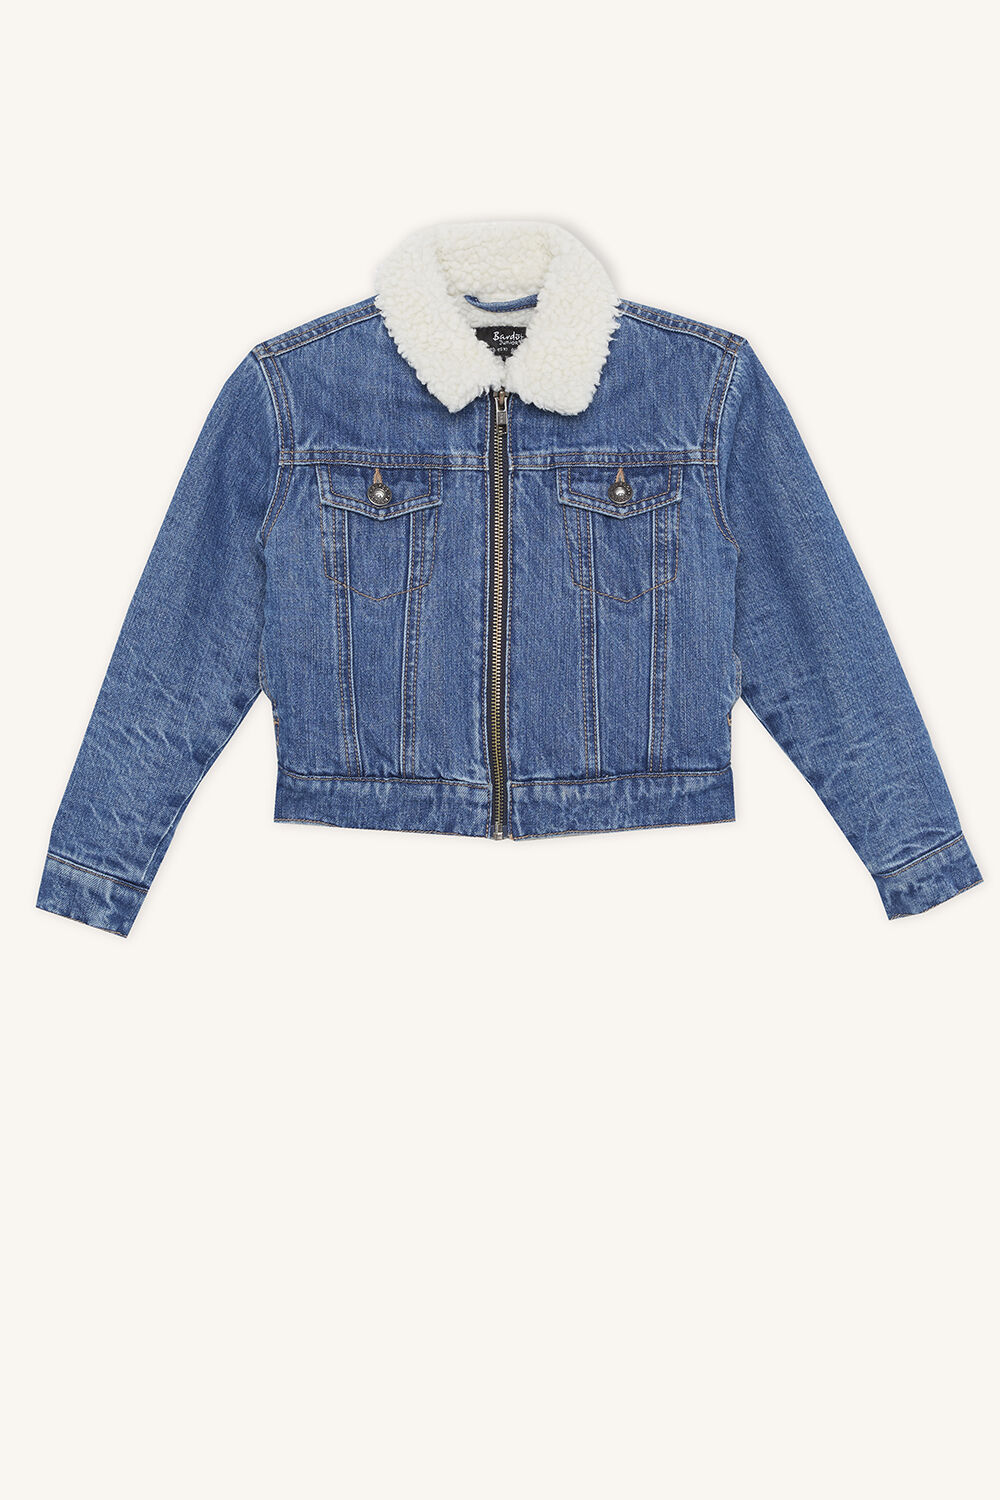 SHERPA LINED JACKET in colour TRUE NAVY